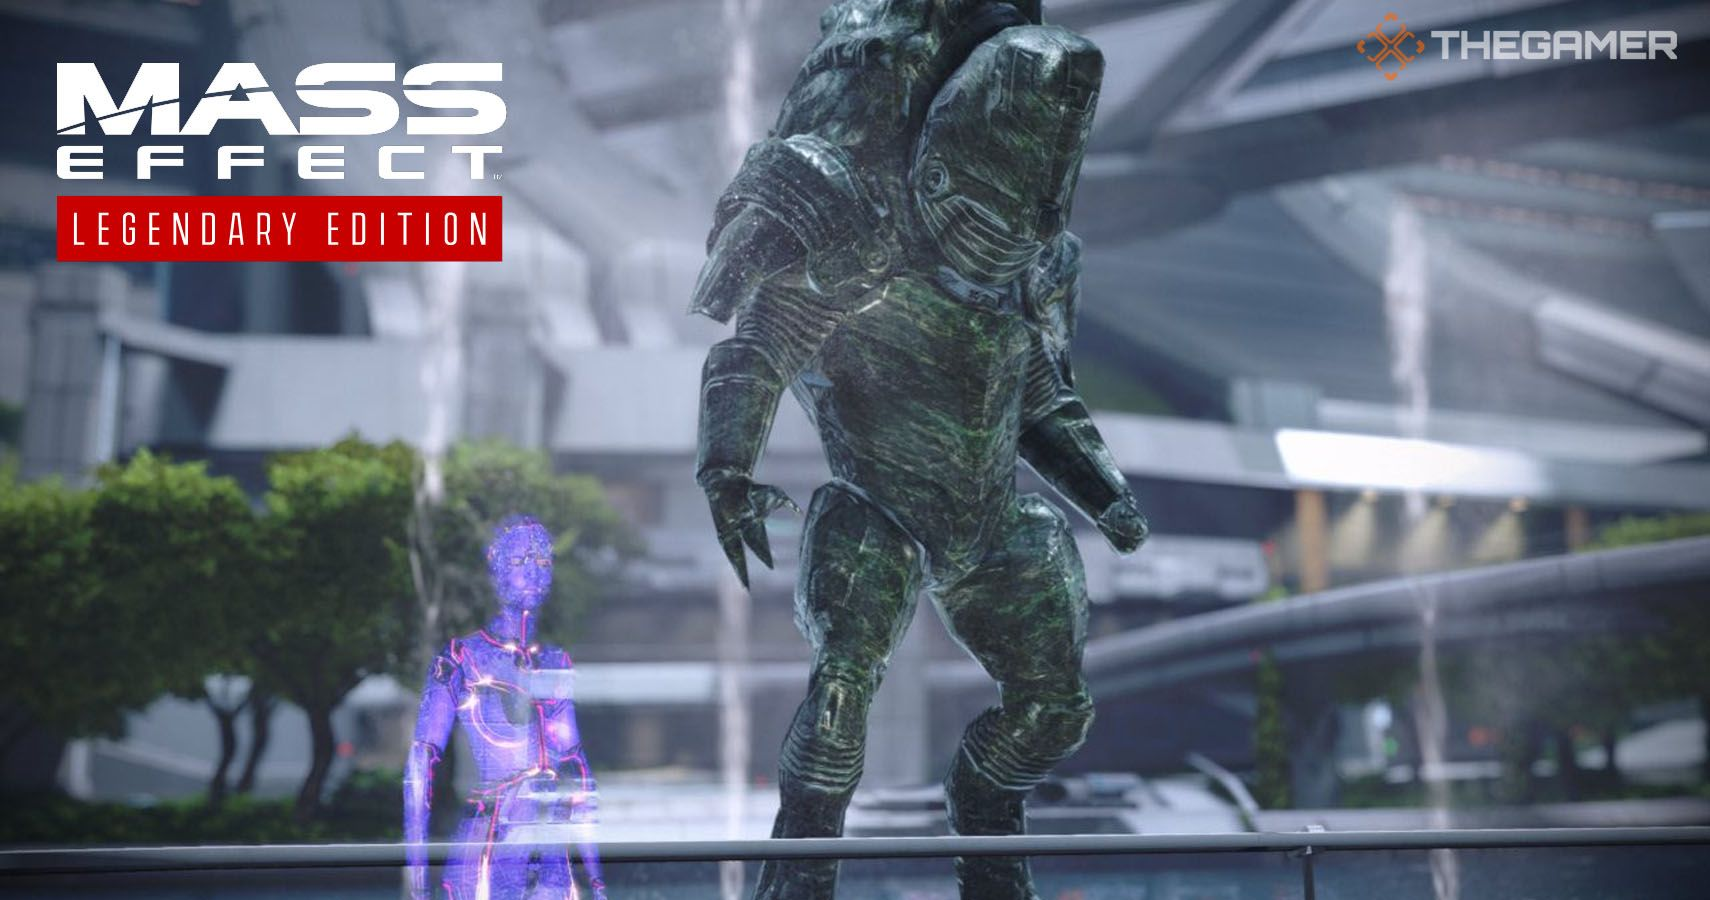 Mass Effect: Where To Find All Primary Alien Codex Entries